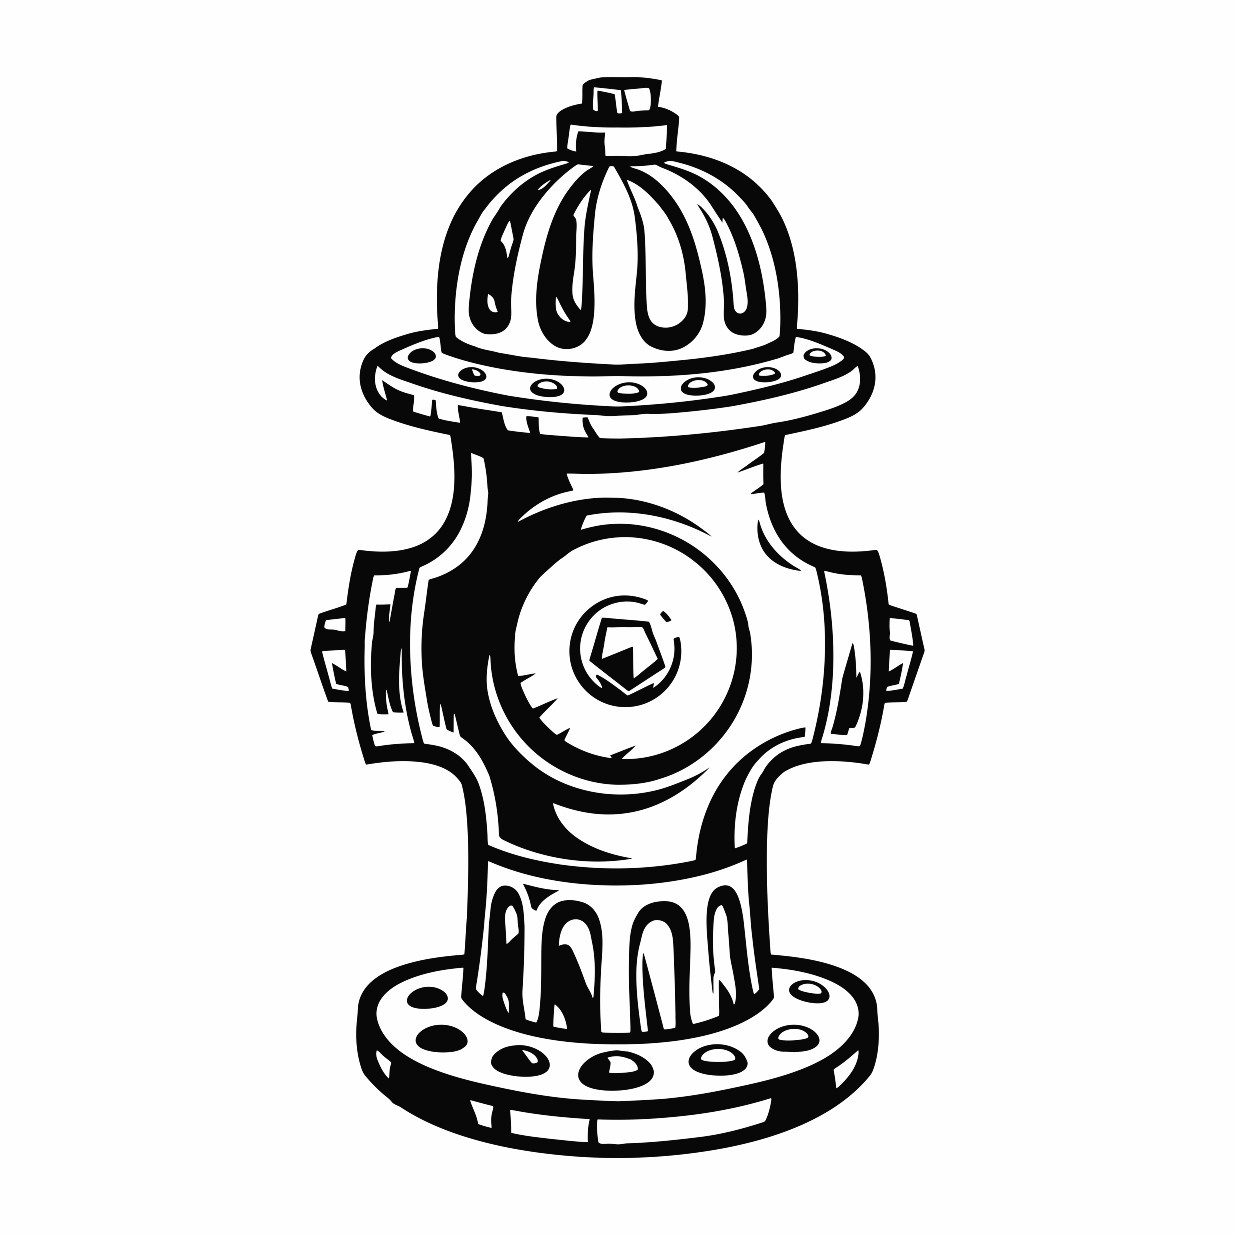 fire hydrant coloring pages how to draw fire hydrant drawingtutorials101com with coloring hydrant fire pages